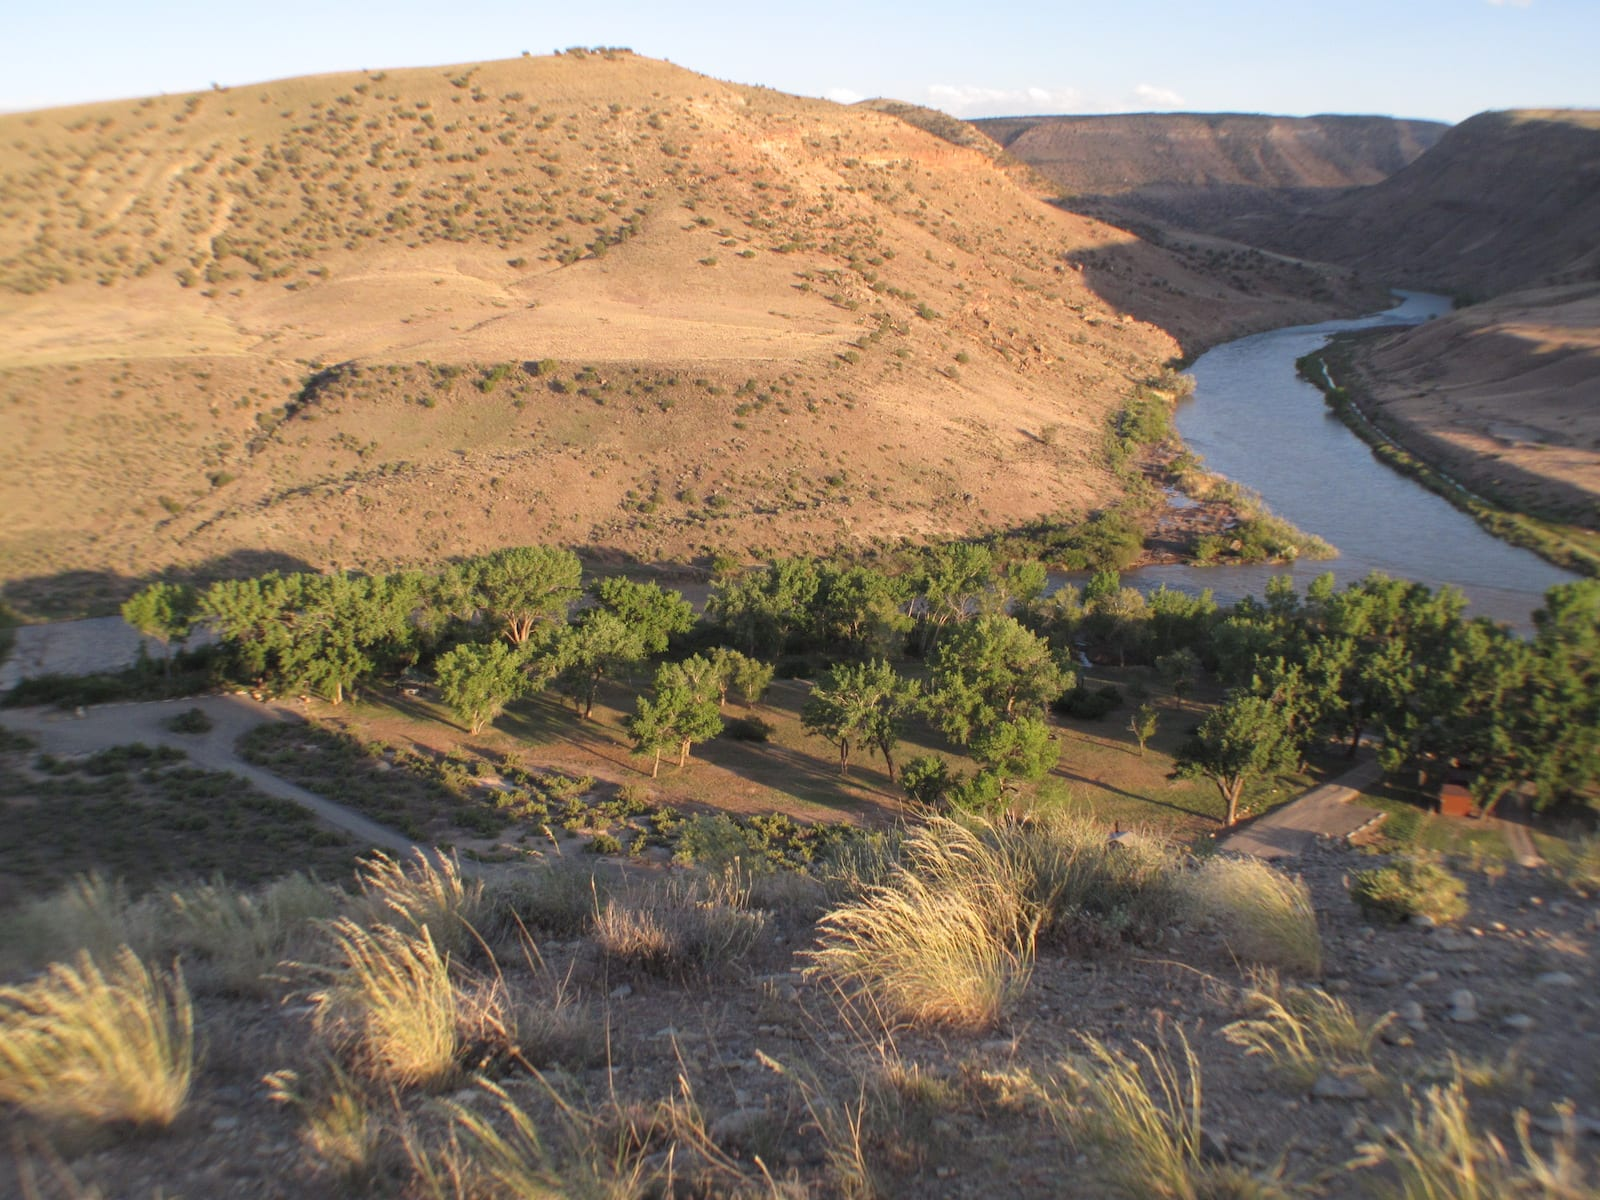 Confluence of North and South Forks of Gunnison River, near Hotchkiss